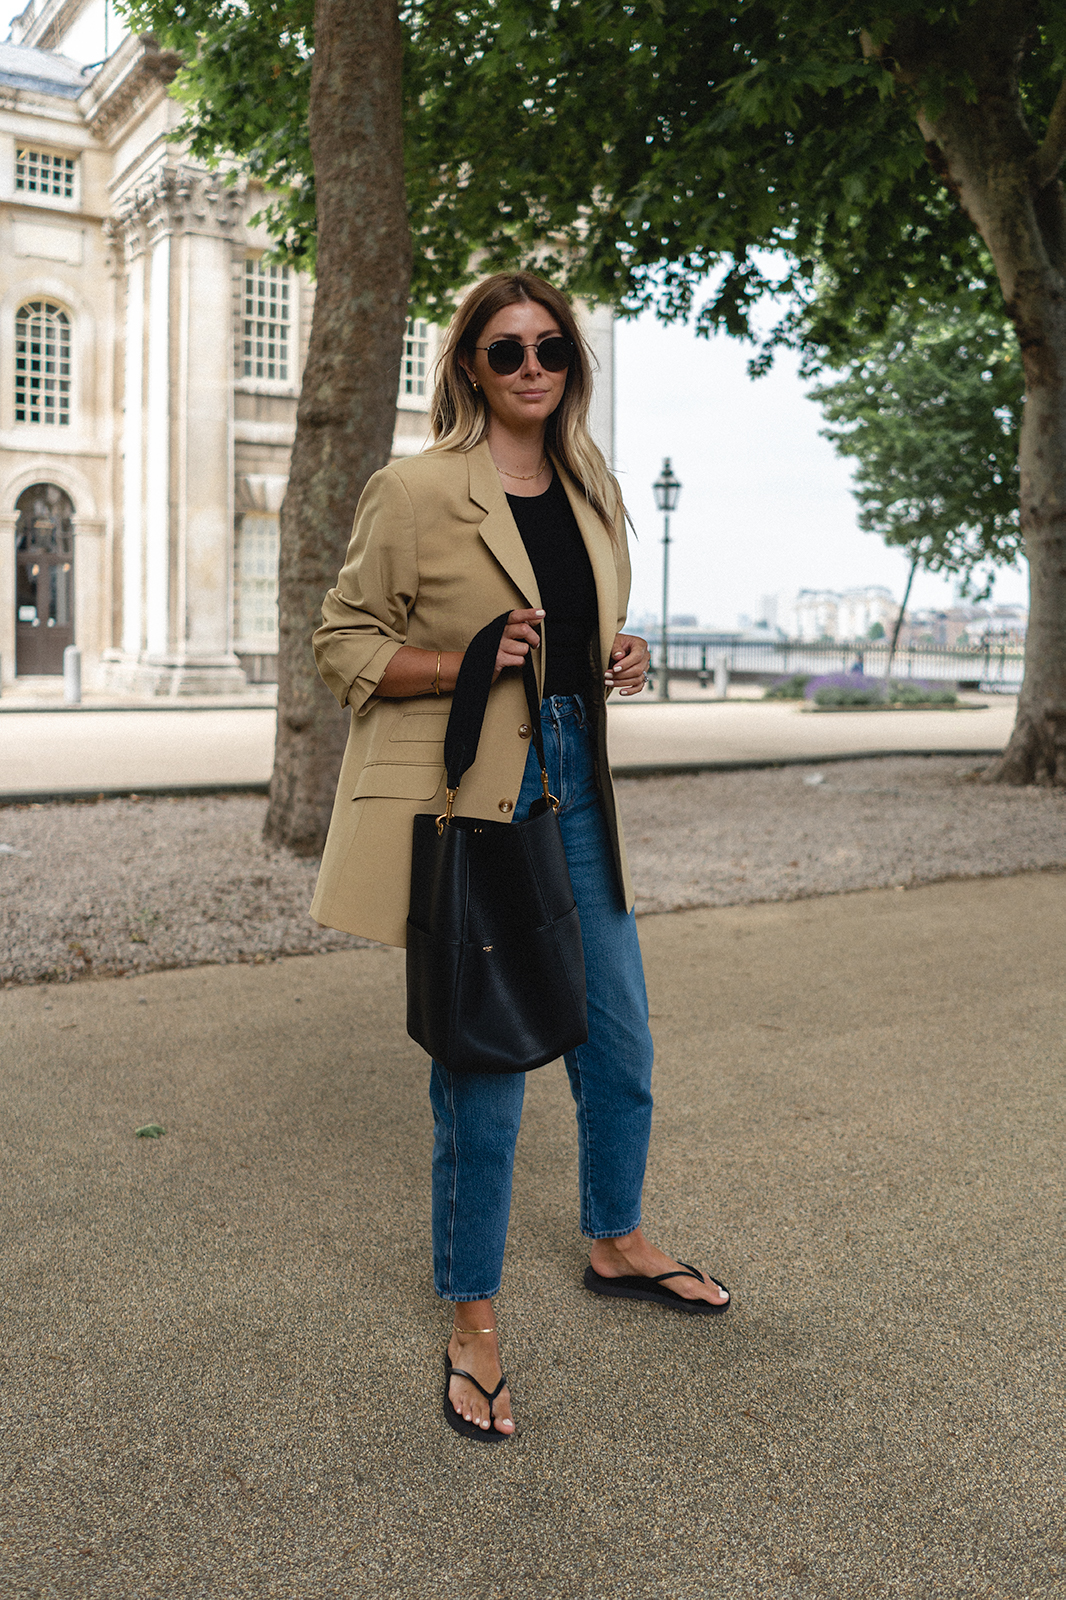 Emma Hill wears vintage yellow blazer, mid wash jeans, blackk Sleepers flip flops, Celine Seau Sangle bag, Ray-Ban round flat sunglasses. Chic Spring Summer outfit